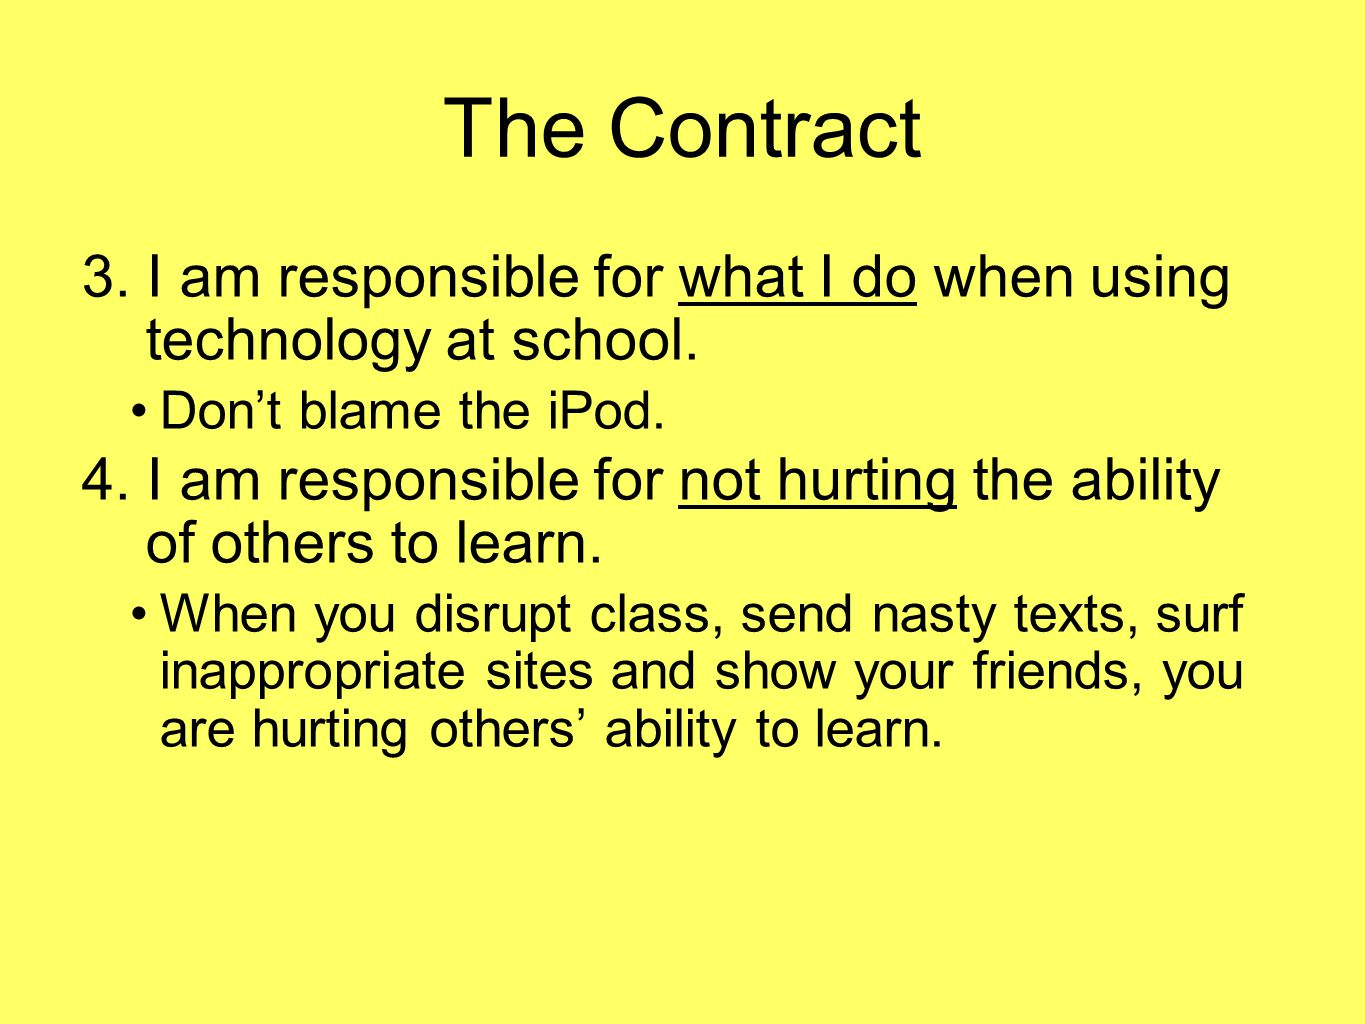 The Contract 3. I am responsible for what I do when using technology at school.